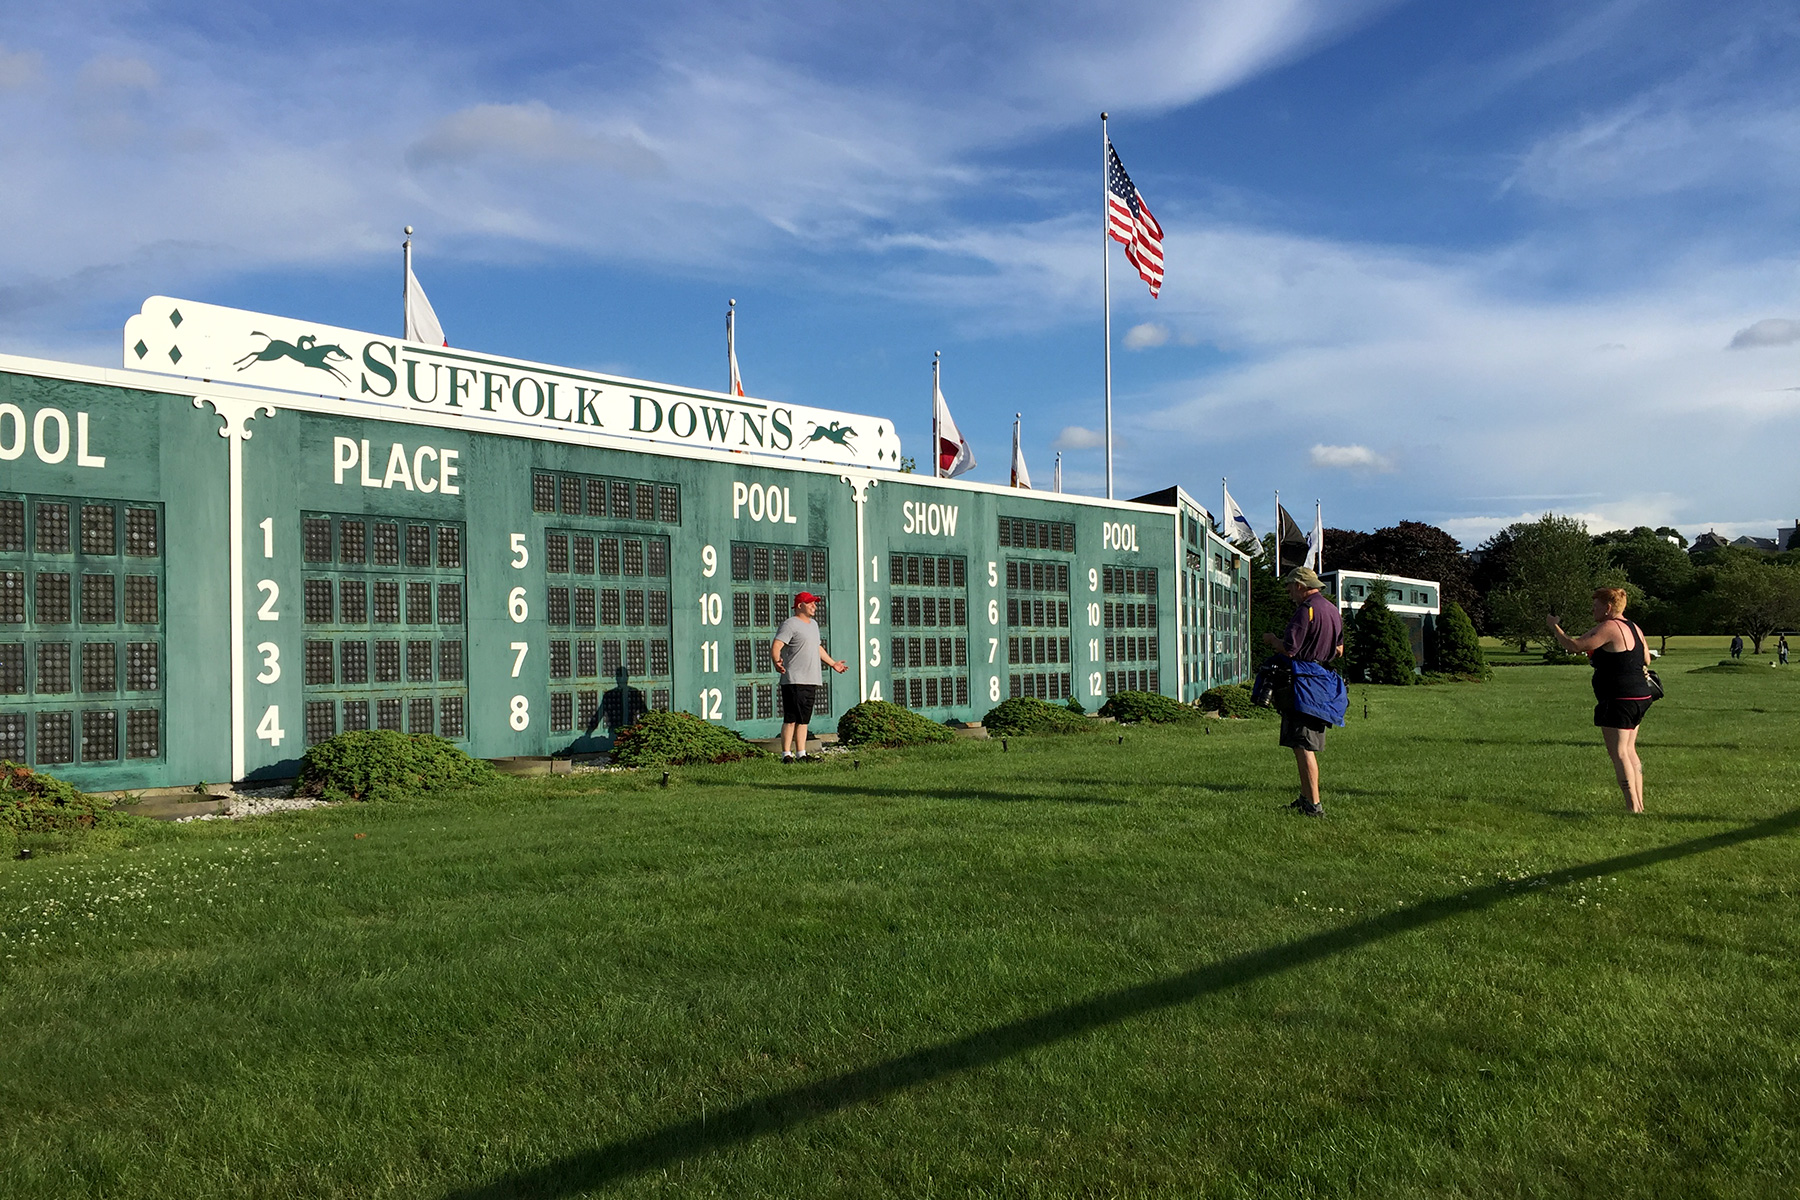 People cross the track to take their photos in front of the infield tote board